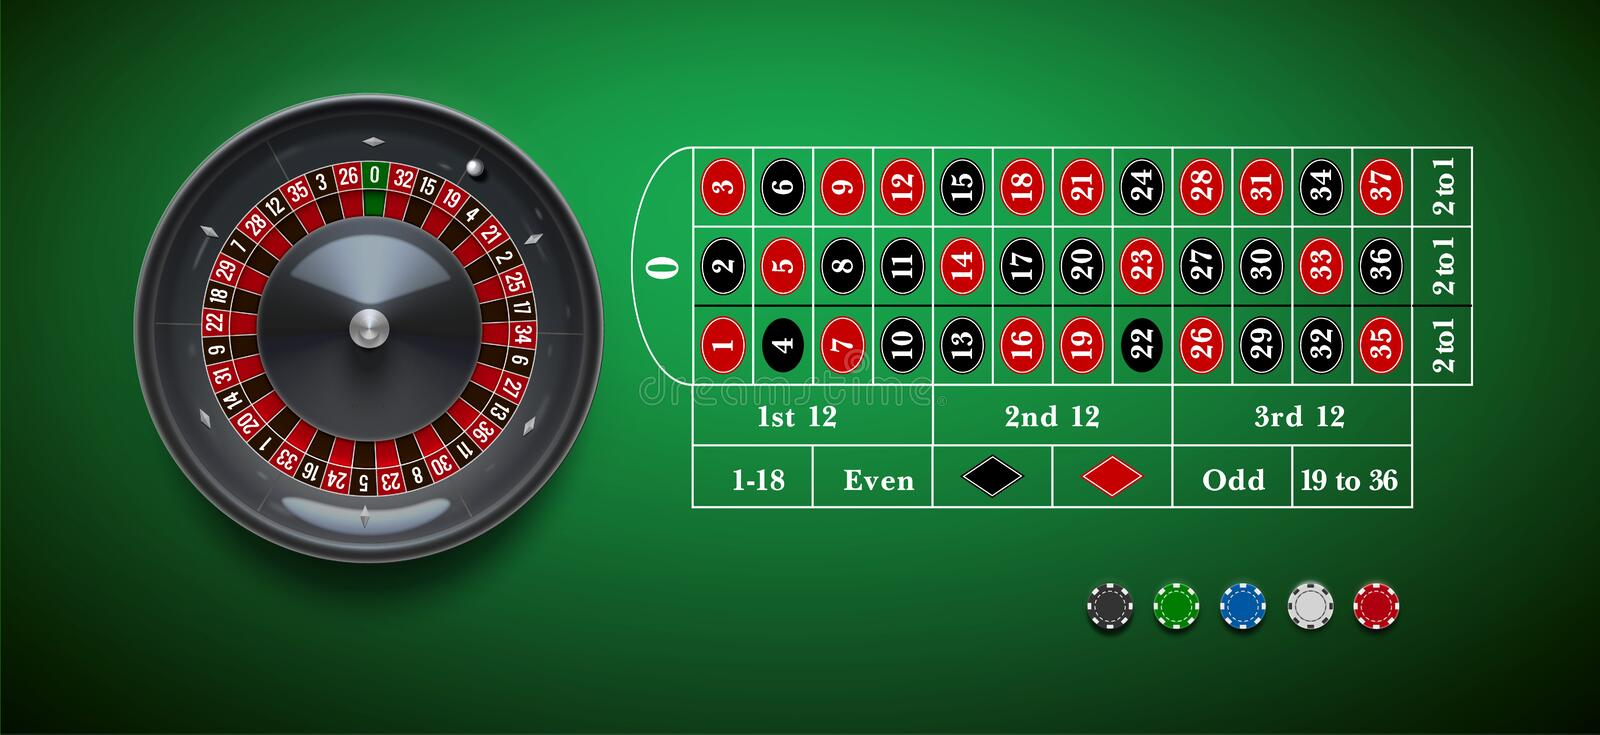 Casino roulette wheel with chips on green table reali royalty free illustration